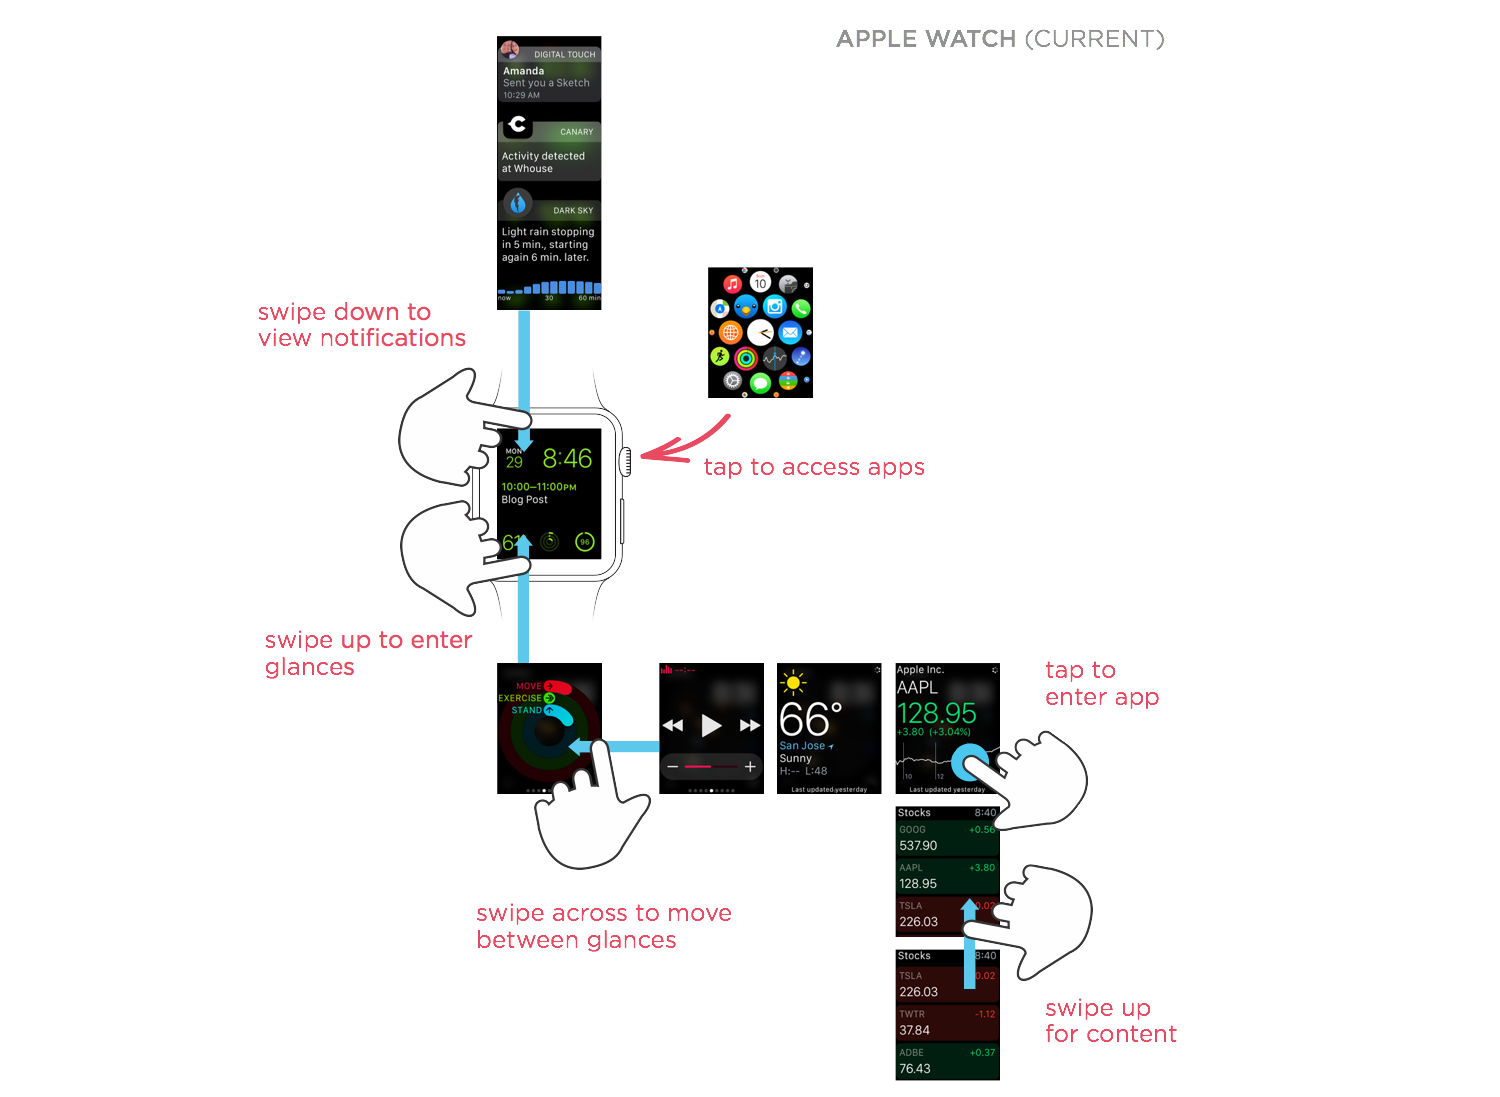 proposal for new interaction model on apple watch